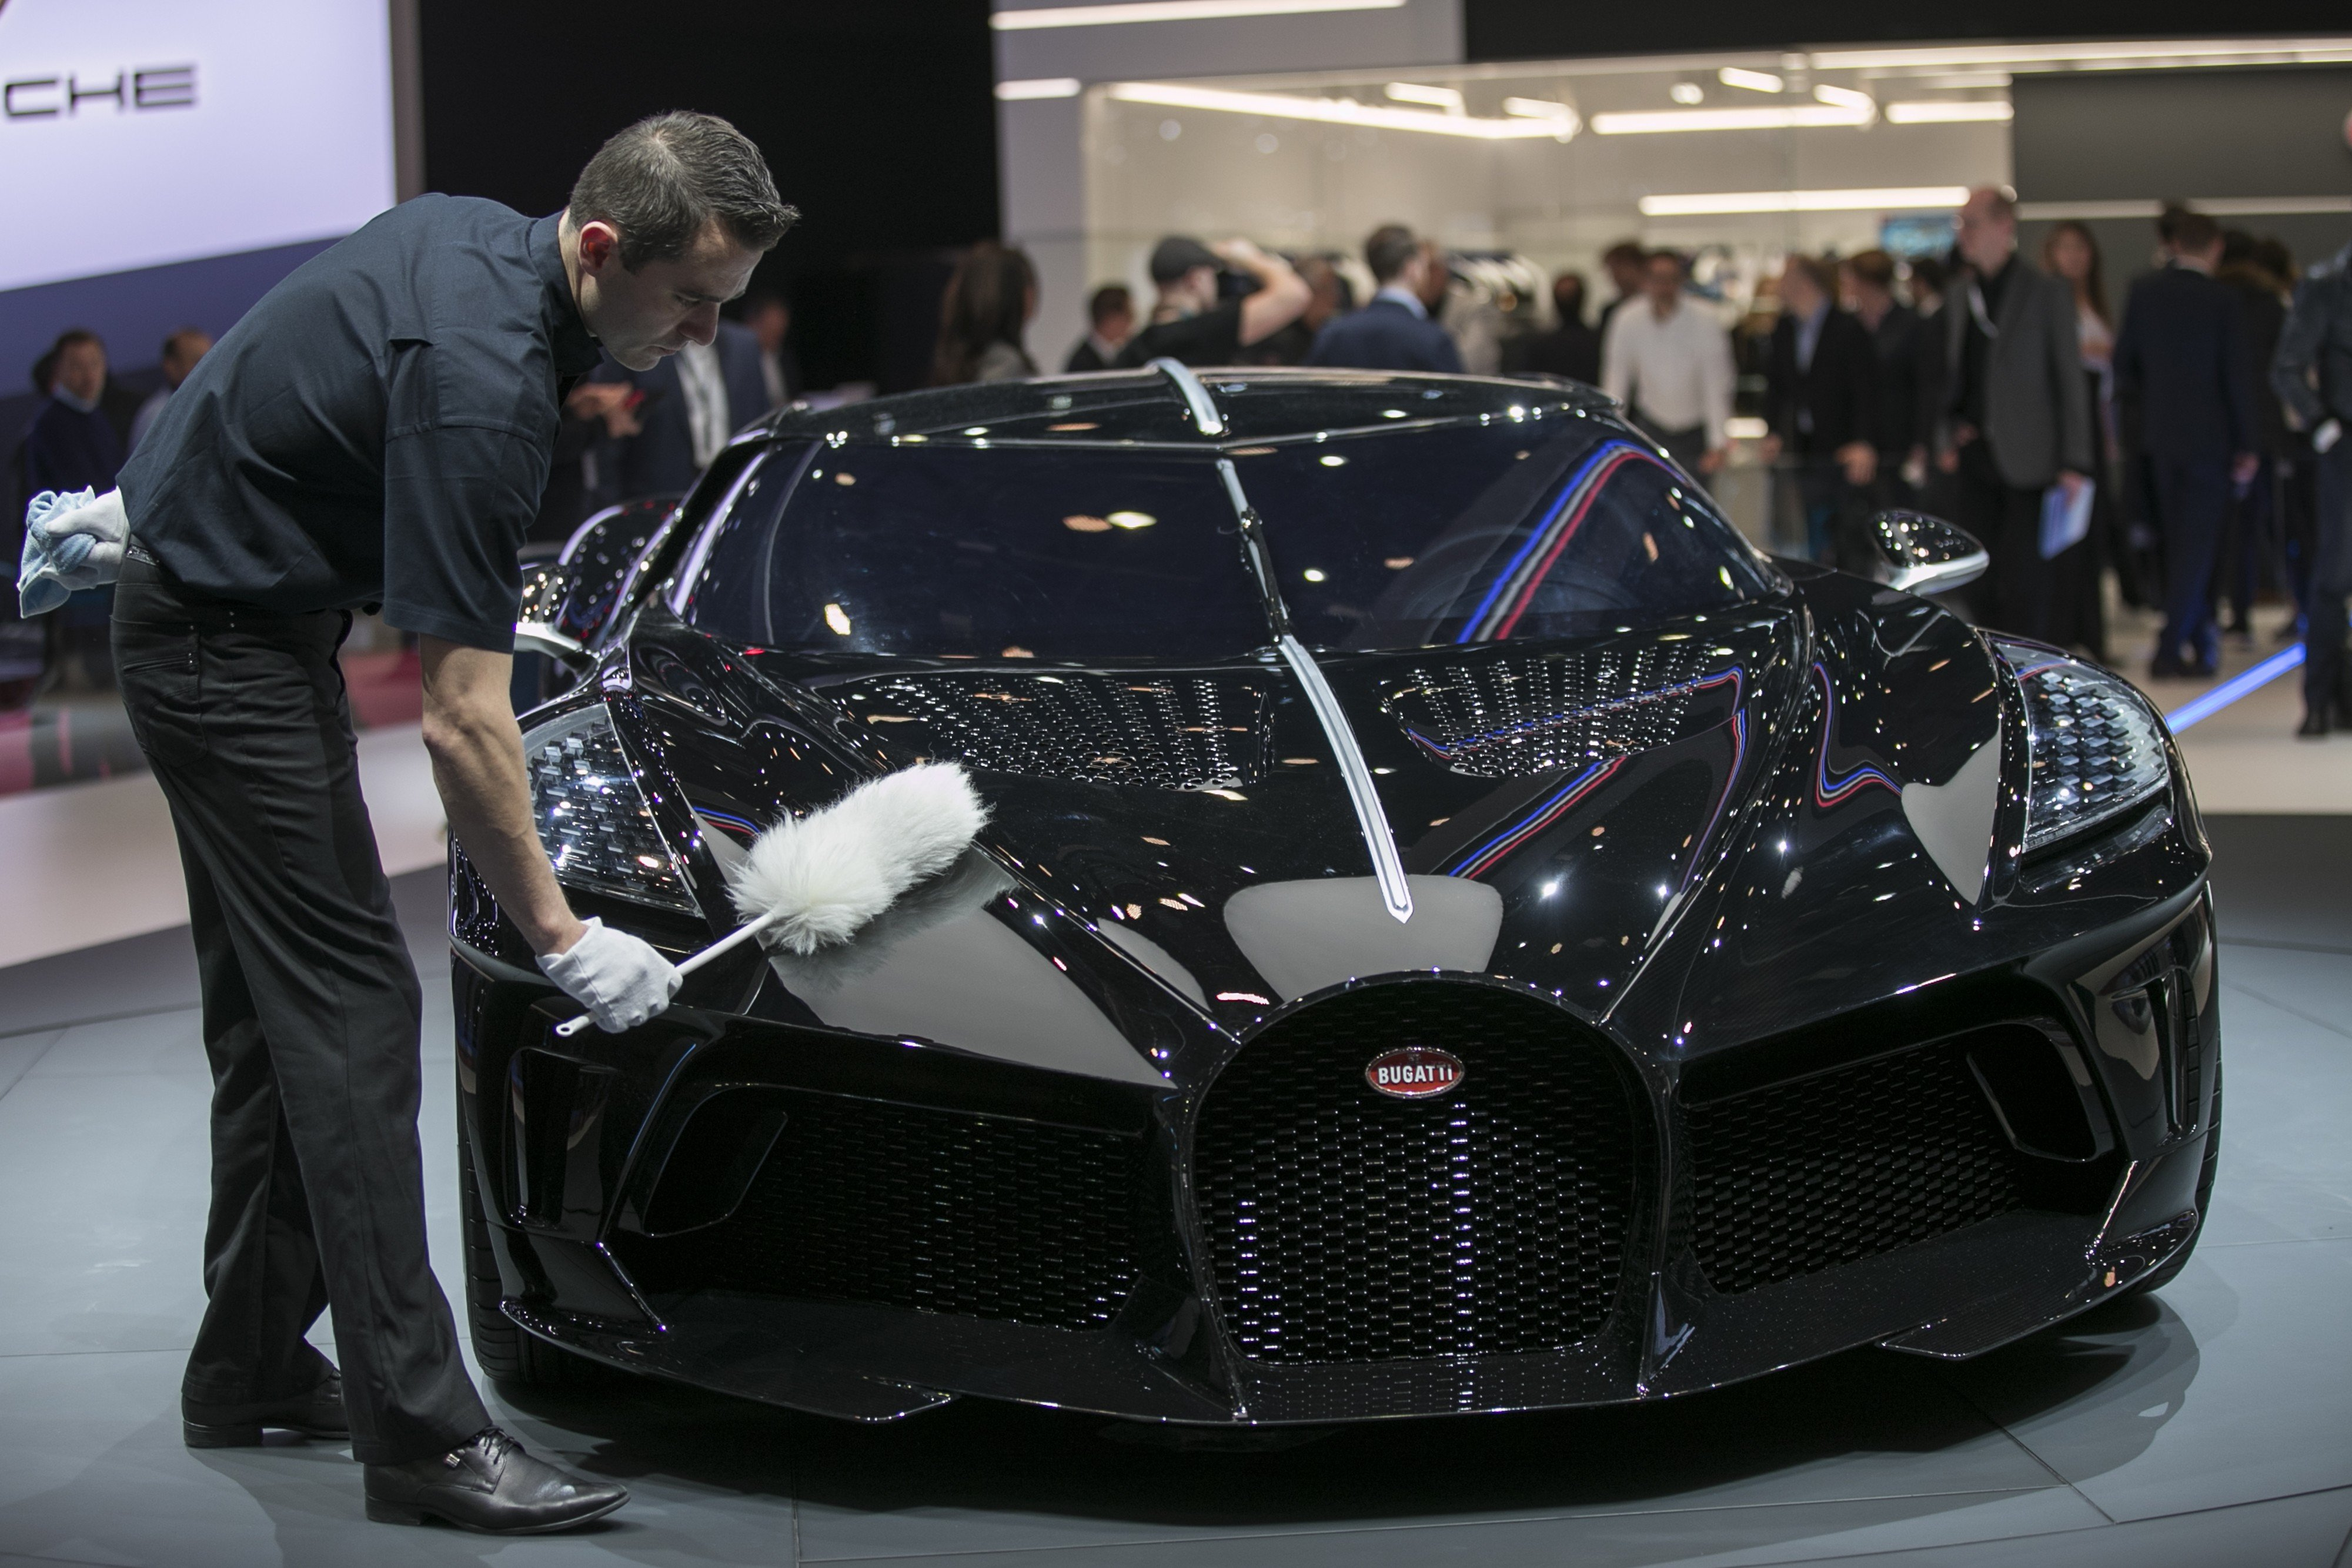 flipboard batmobile like bugatti most expensive new car ever made snapped up by mystery buyer. Black Bedroom Furniture Sets. Home Design Ideas